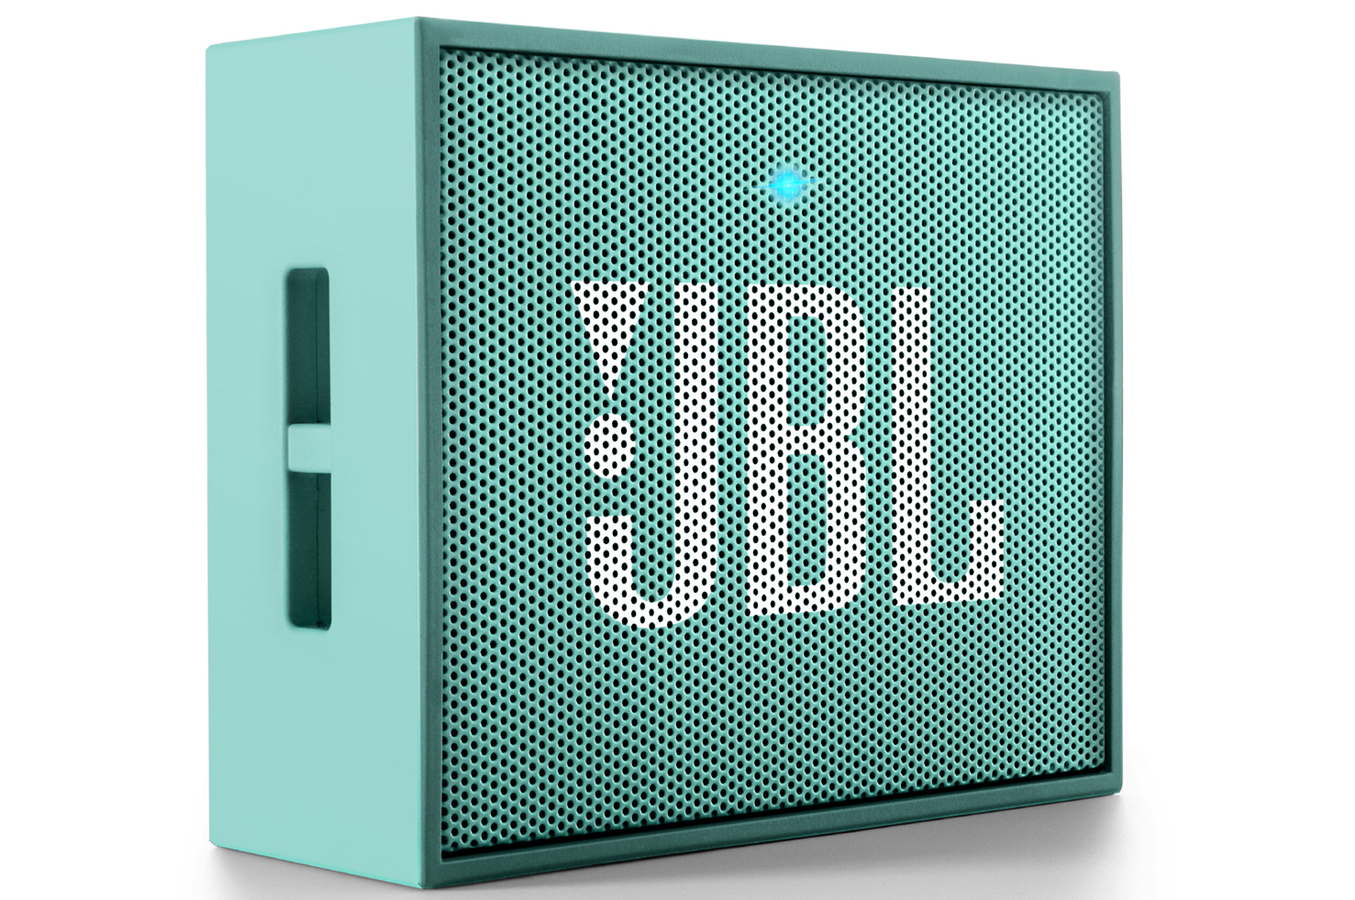 enceinte portable jbl jbl clip noir clip noir r paration enceinte portable enceinte portable. Black Bedroom Furniture Sets. Home Design Ideas